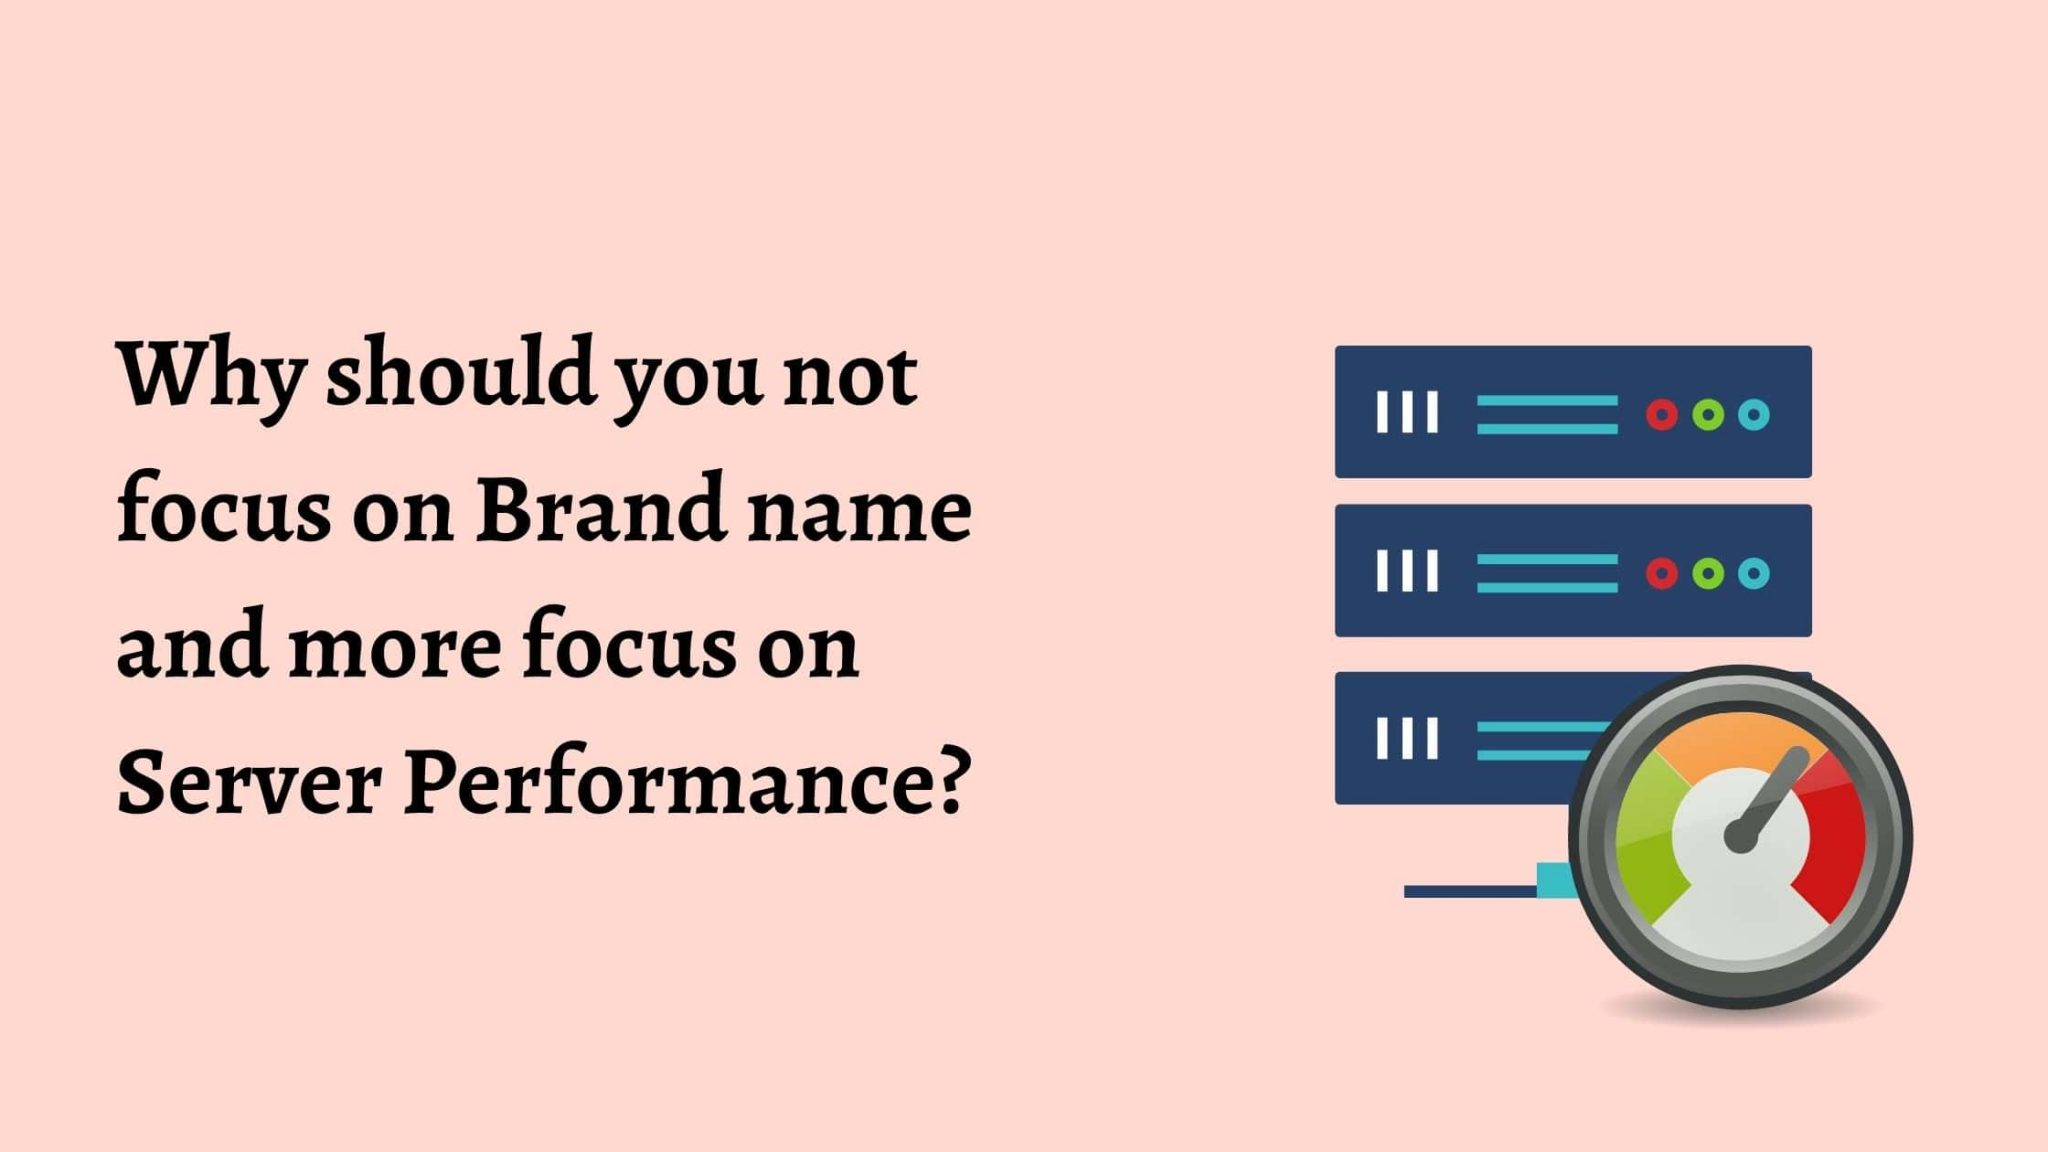 Why should you not focus on Brand name and more focus on Server Performance?